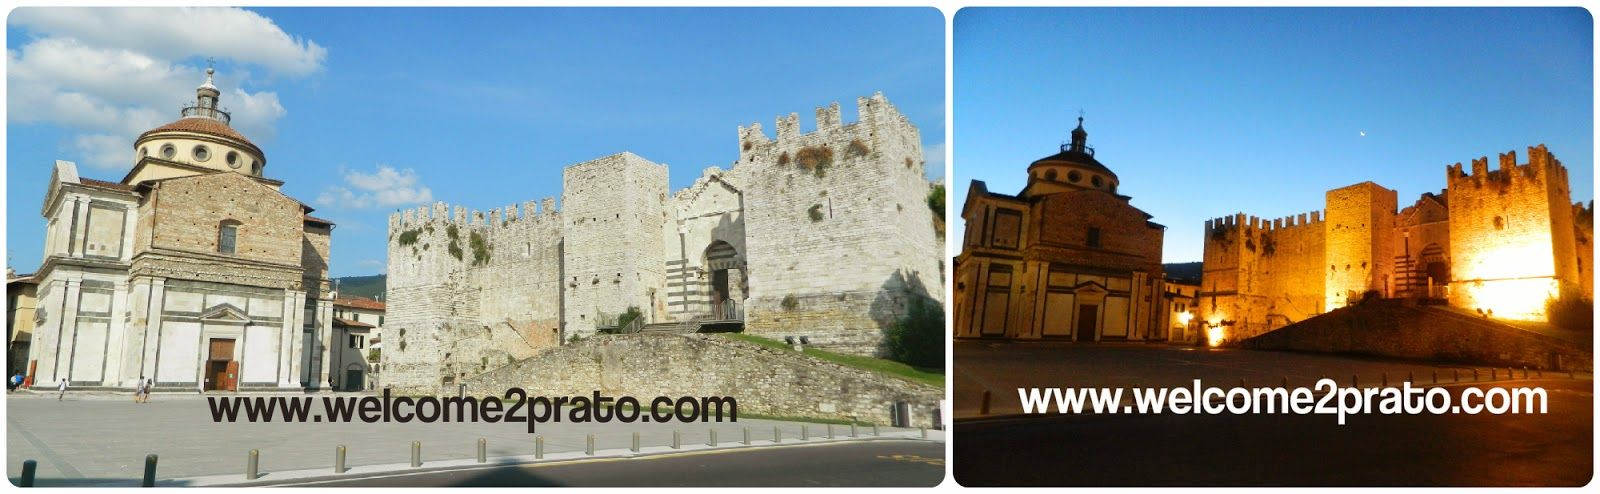 Piazza Santa Maria delle Carceri by Day and by Night.